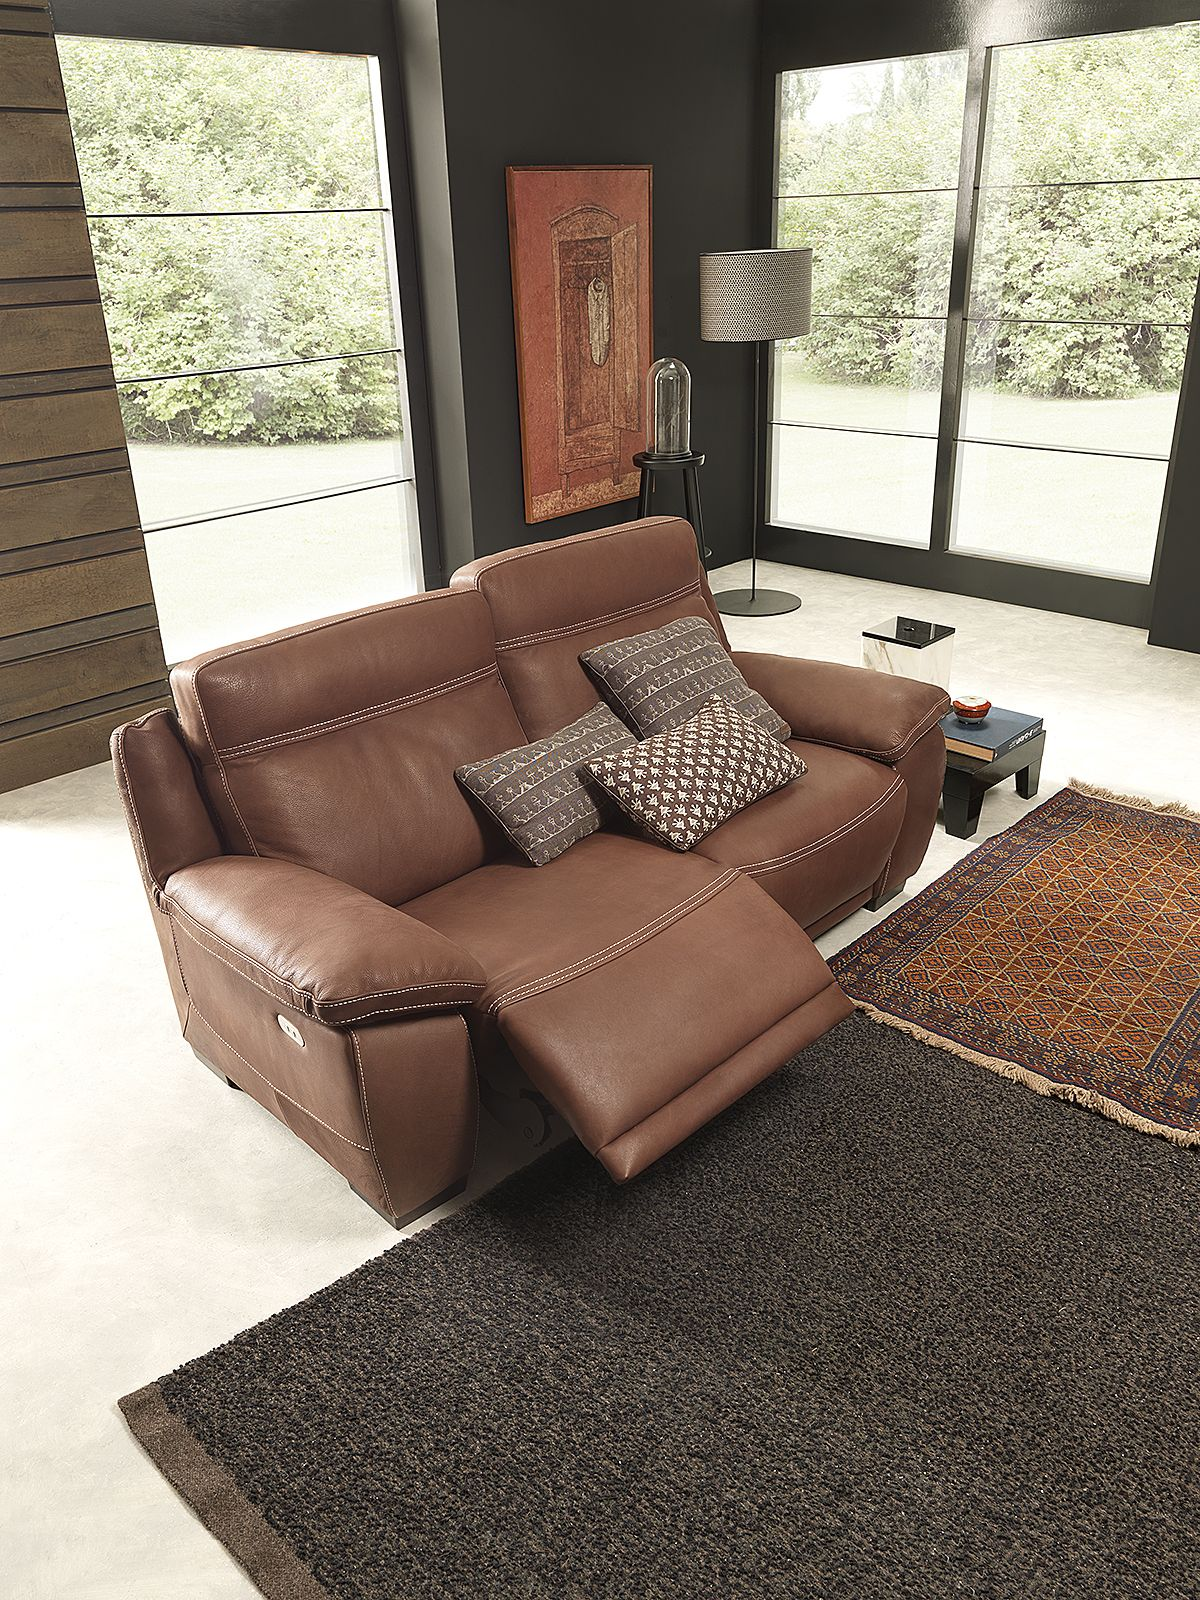 Natuzzi Editions Leather Couches Living Room Living Room Recliner Brown Leather Couch Living Room